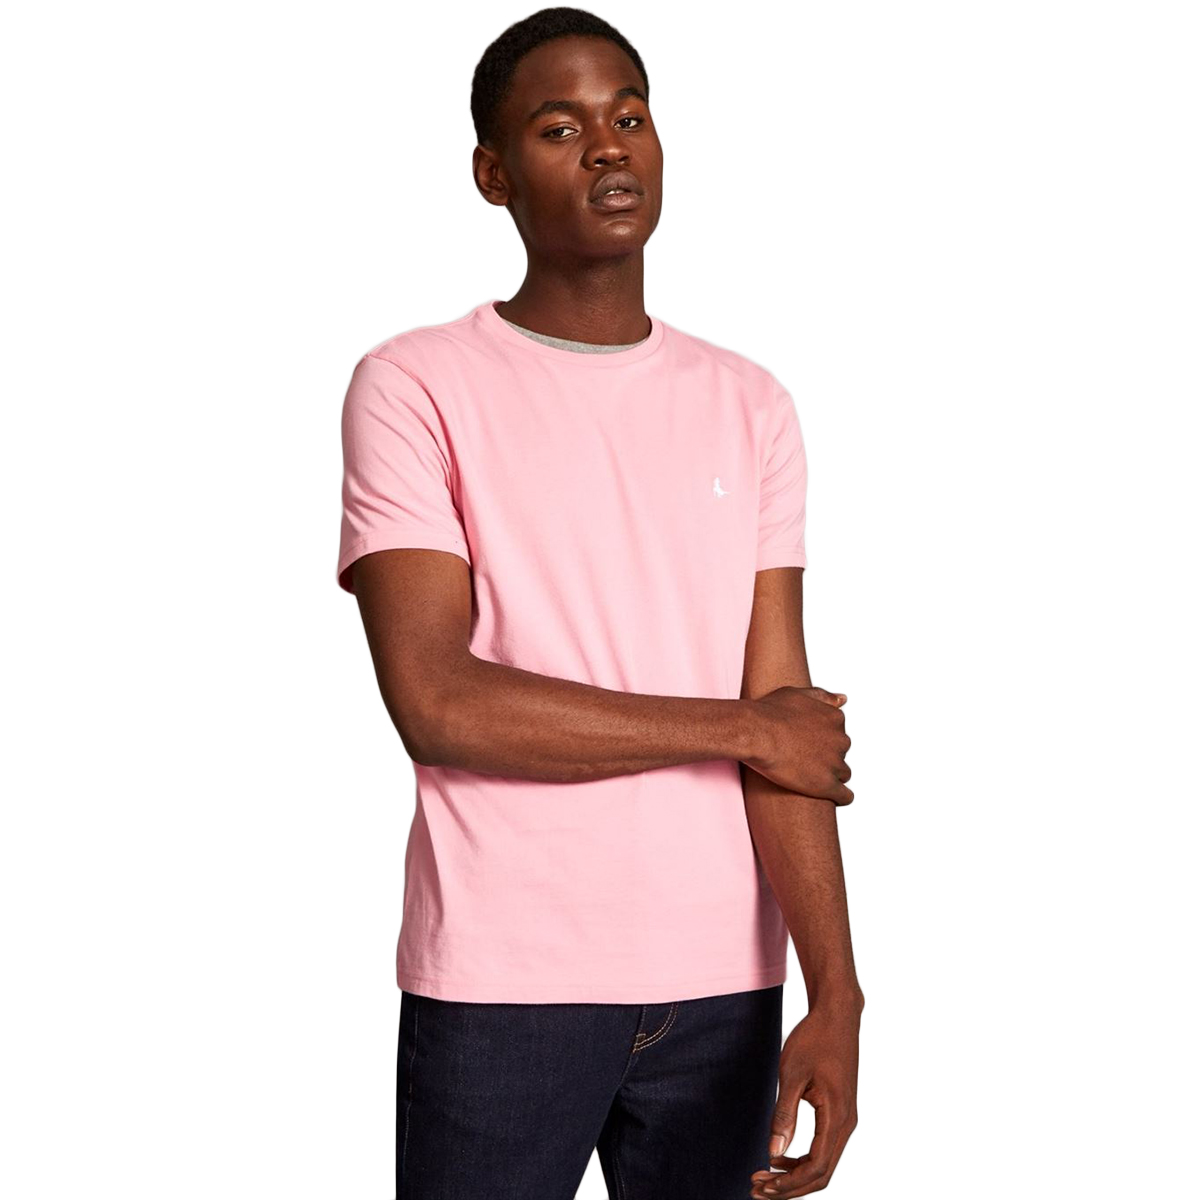 Jack Wills Men's Sandleford Short-Sleeve Tee - Red, M